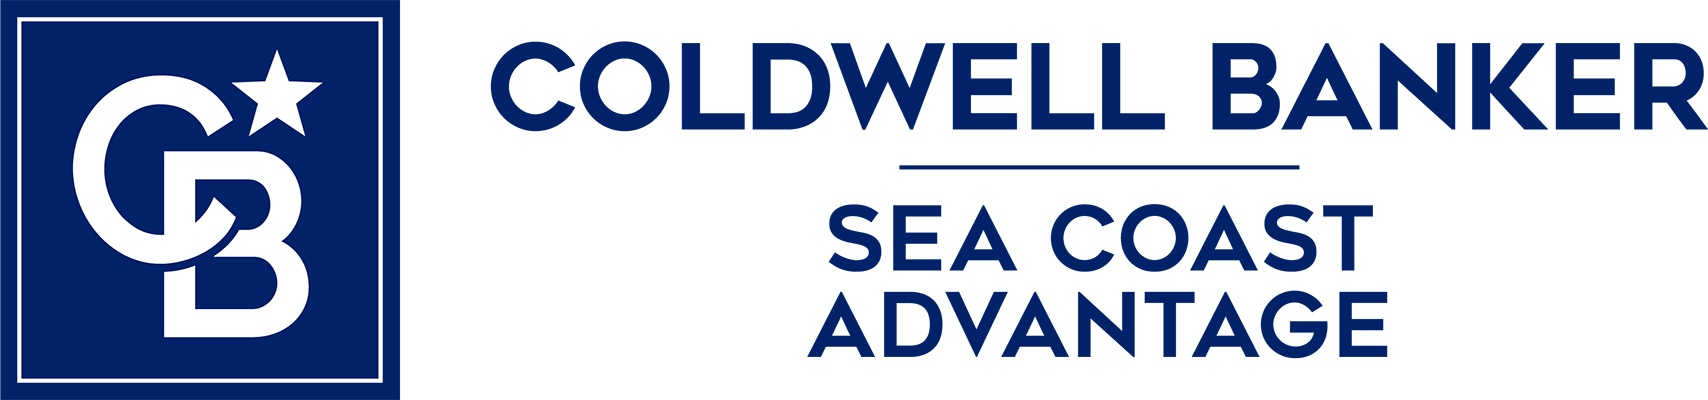 Tracy Lewchuk - Coldwell Banker Sea Coast Advantage Realty